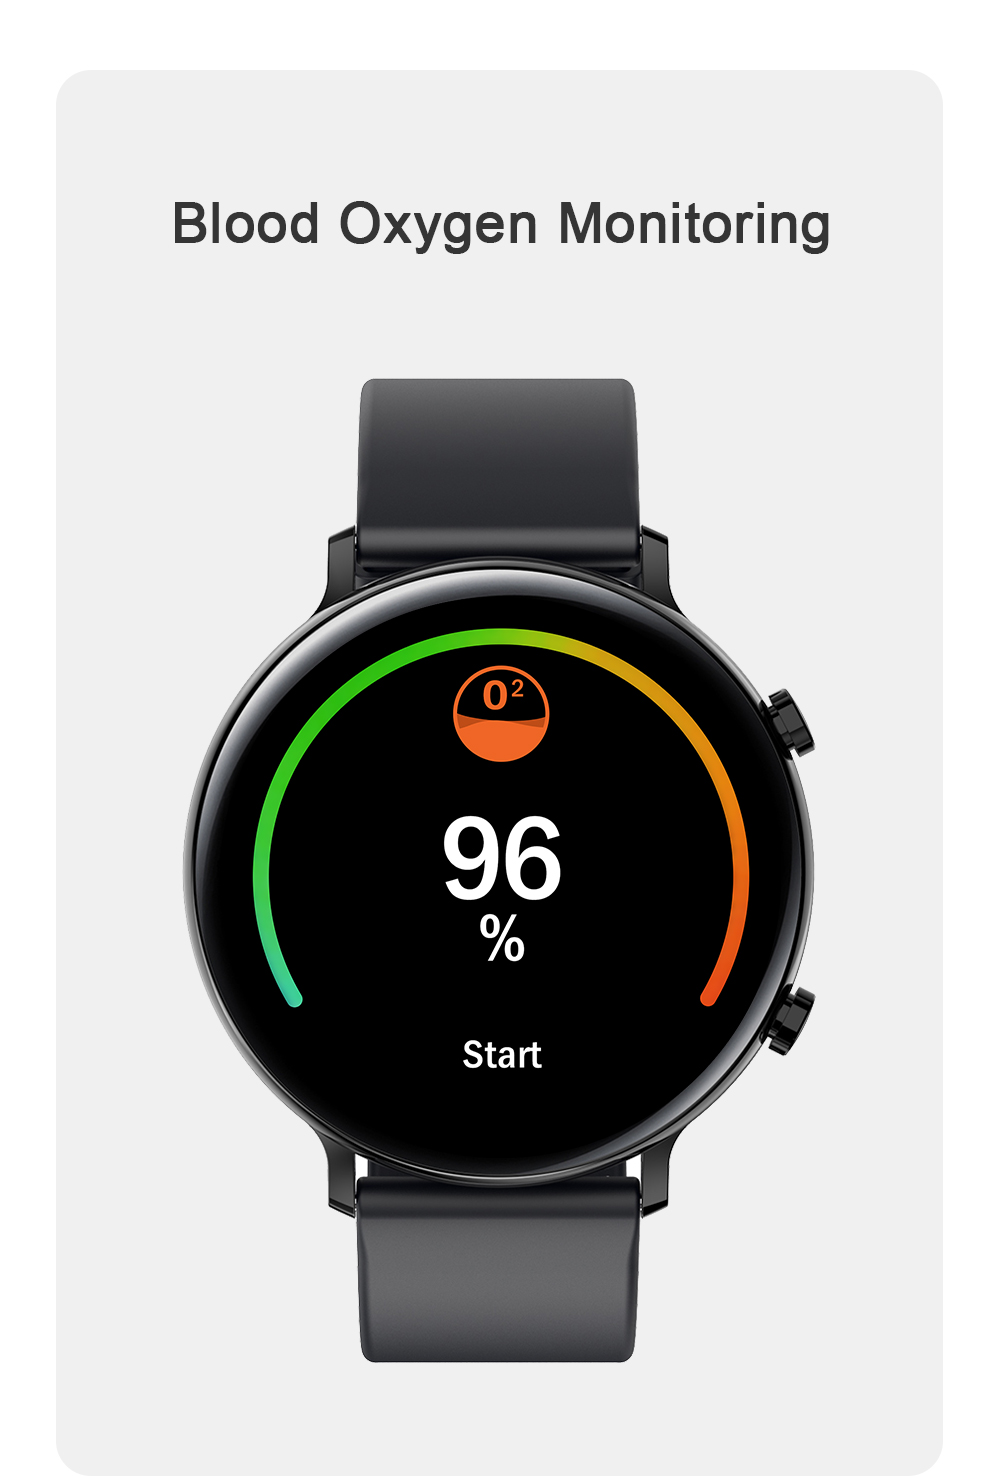 Hc0d49575ab25453183a31c6599cf69fc7 SANLEPUS ECG PPG Smart Watch With Dial Calls 2021 New Men Women Smartwatch Blood Pressure Monitor For Android Samsung Apple